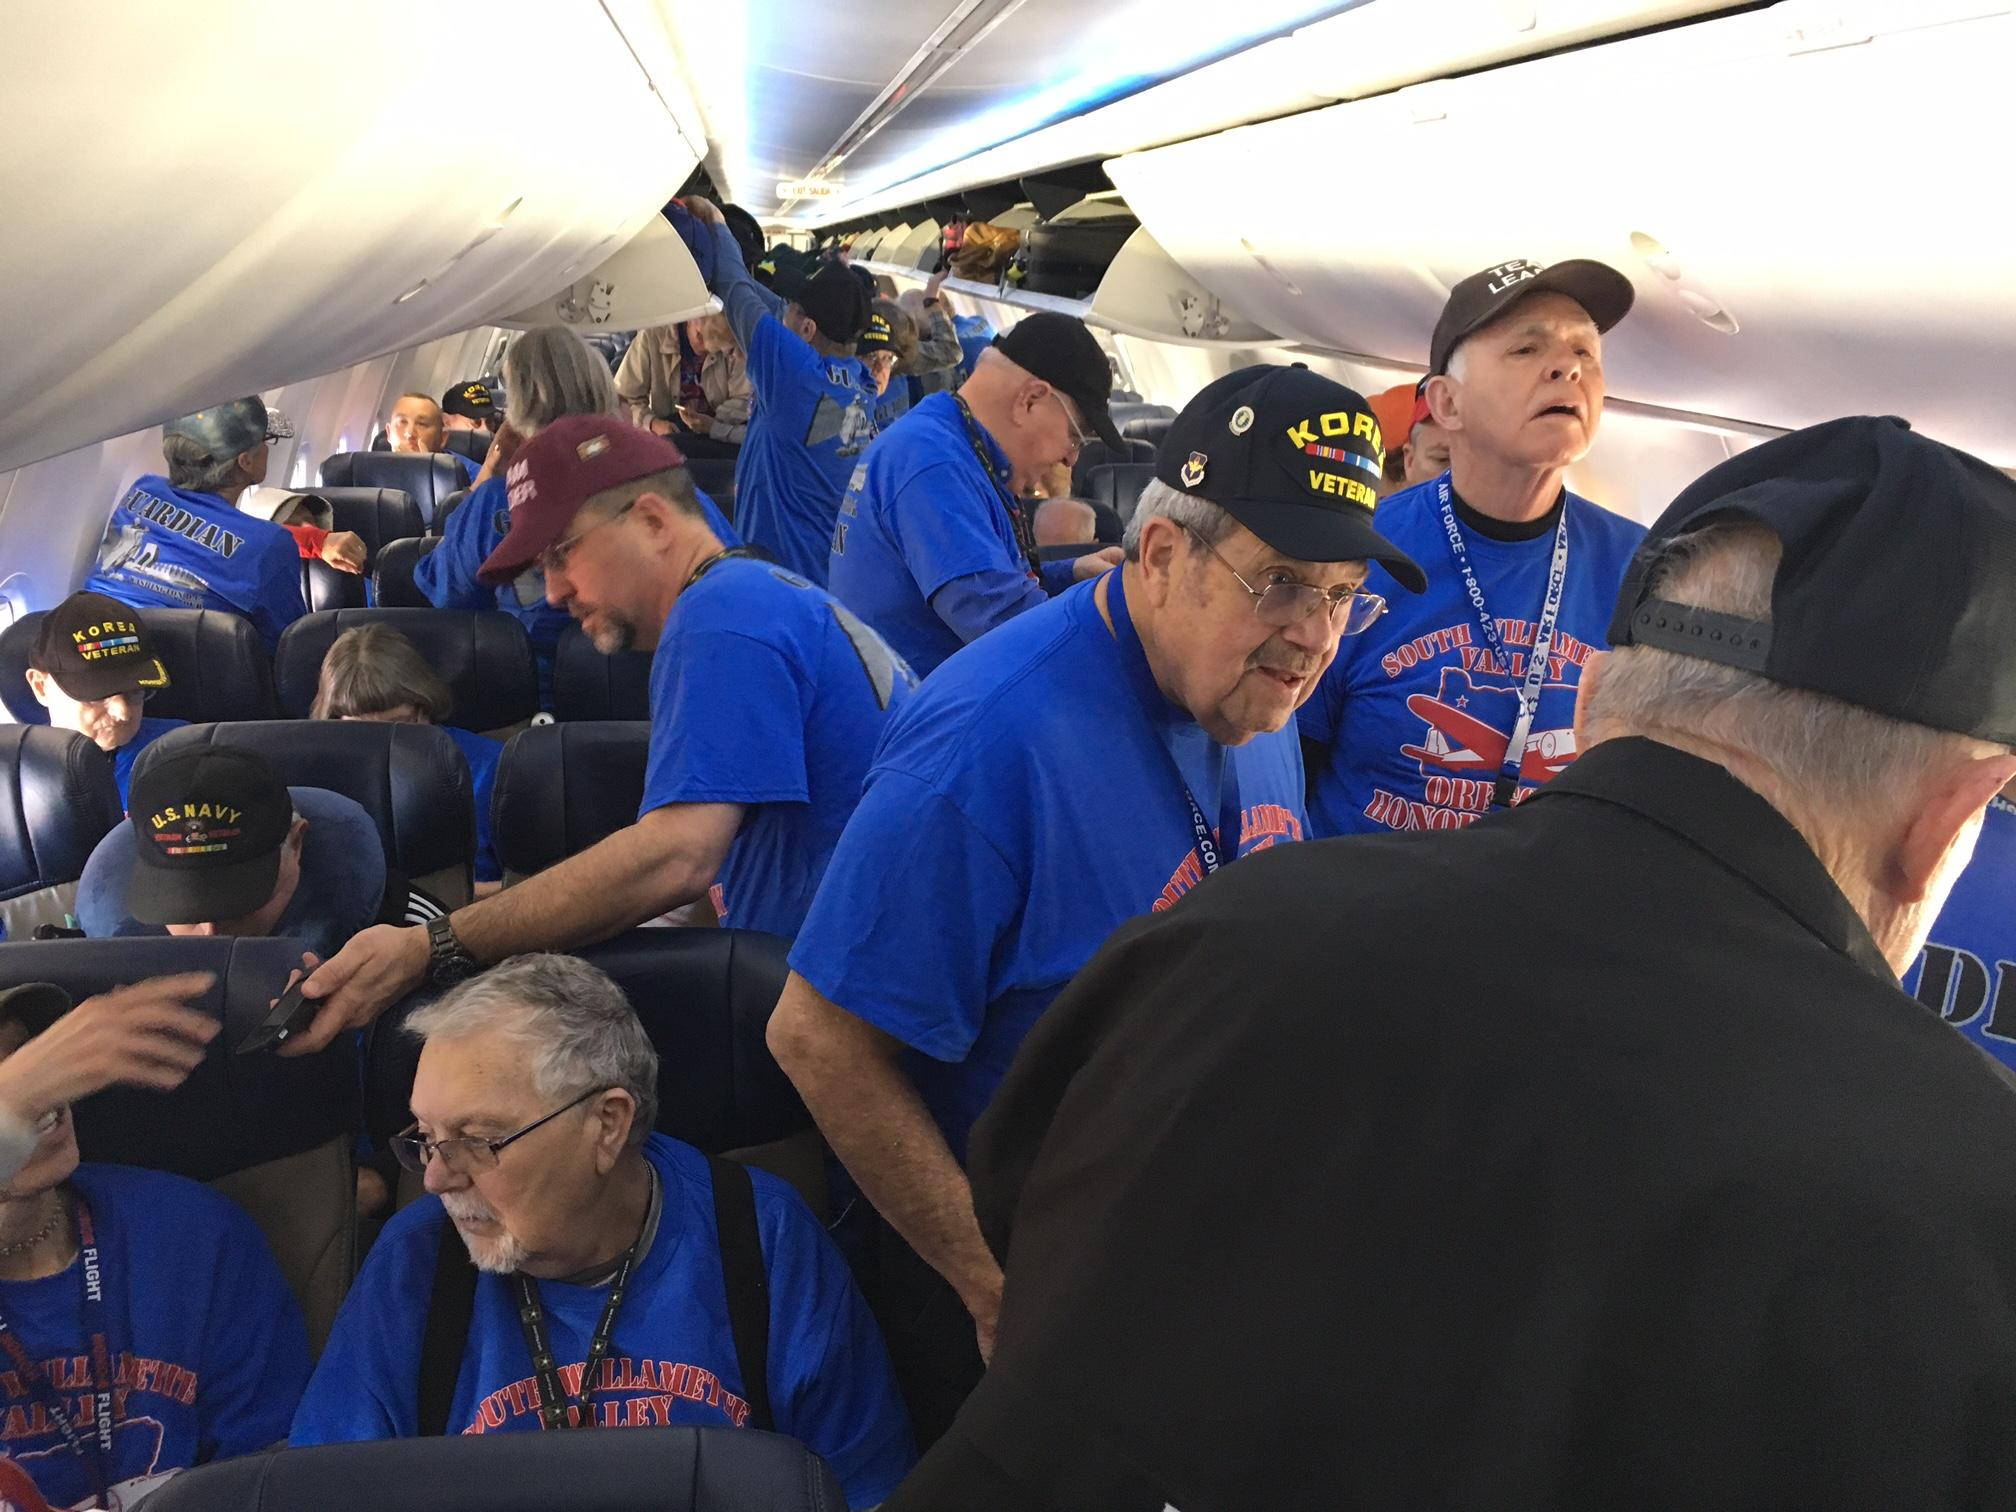 Honor Flight on plane.JPG